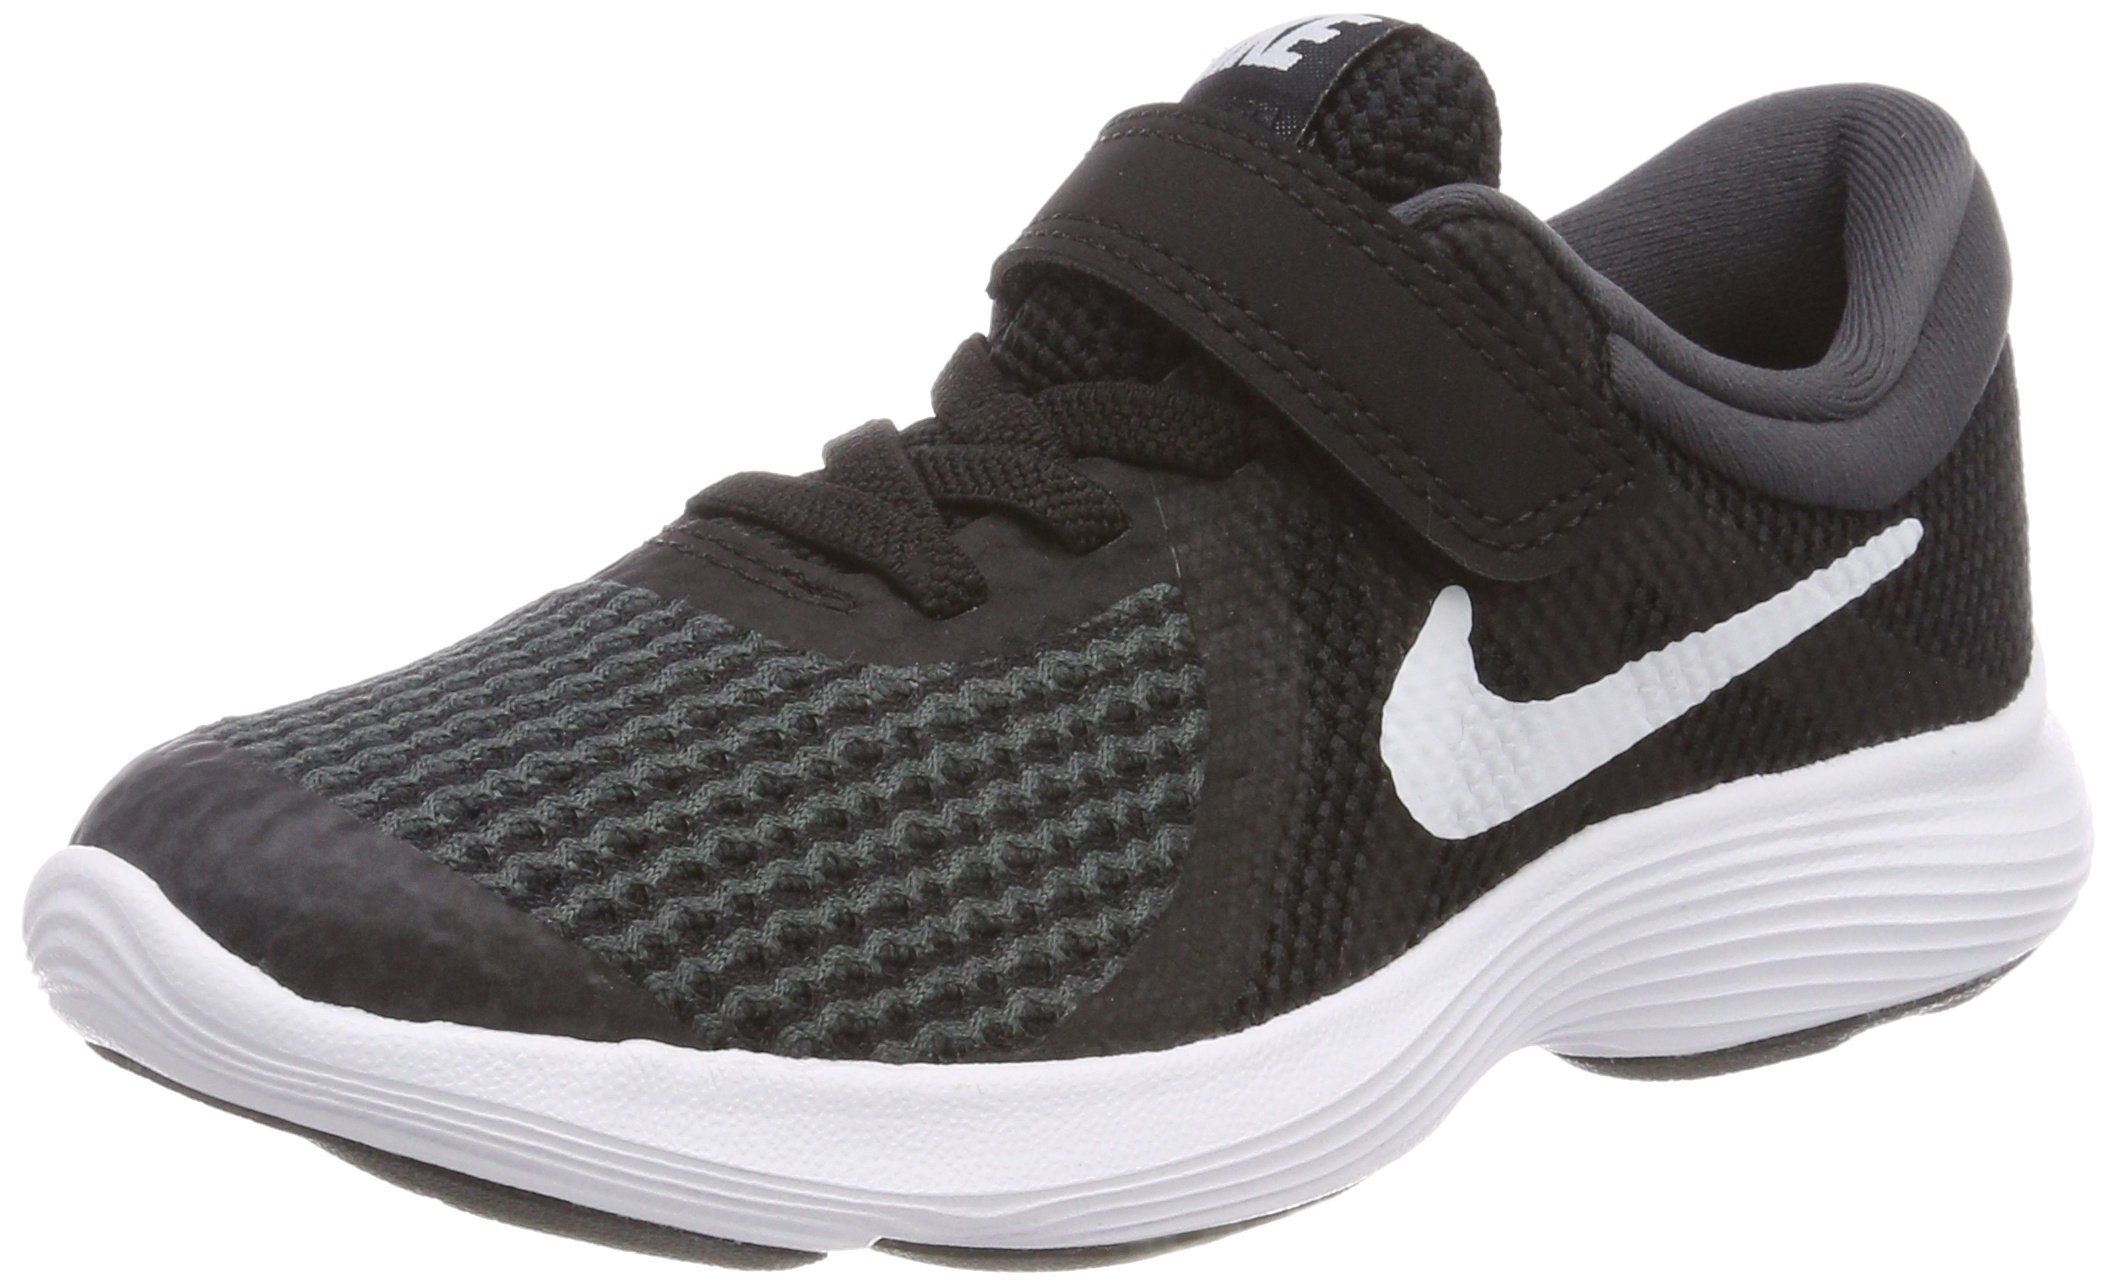 NIKE Boys' Revolution 4 (PSV) Running Shoe, Black/White-Anthracite, 13.5C Youth US Little Kid